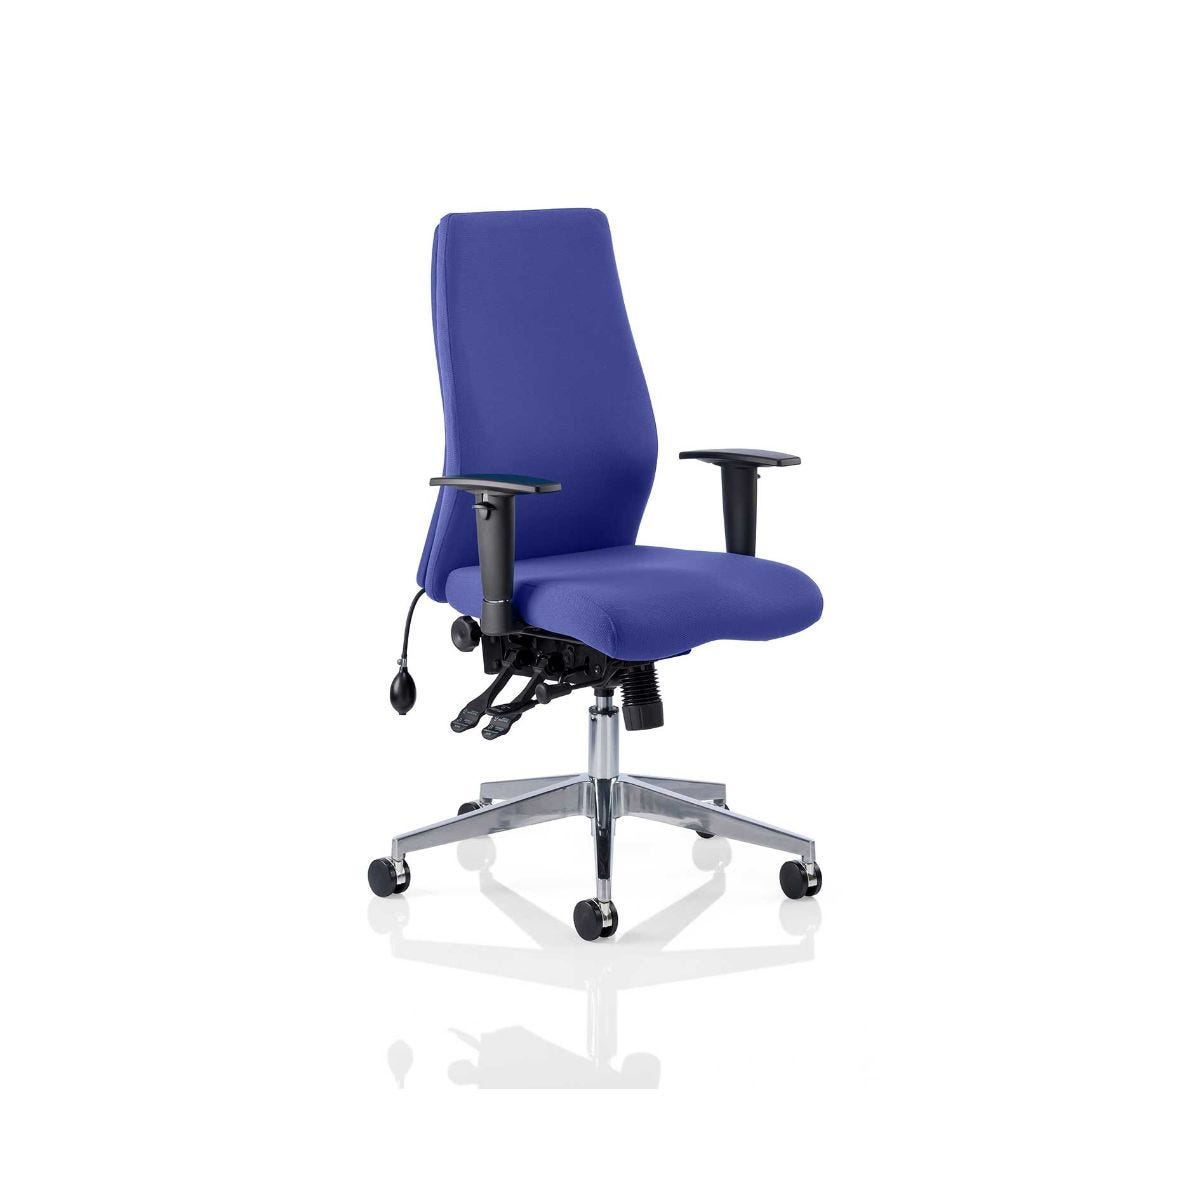 Onyx Bespoke Office Chair, Stevia